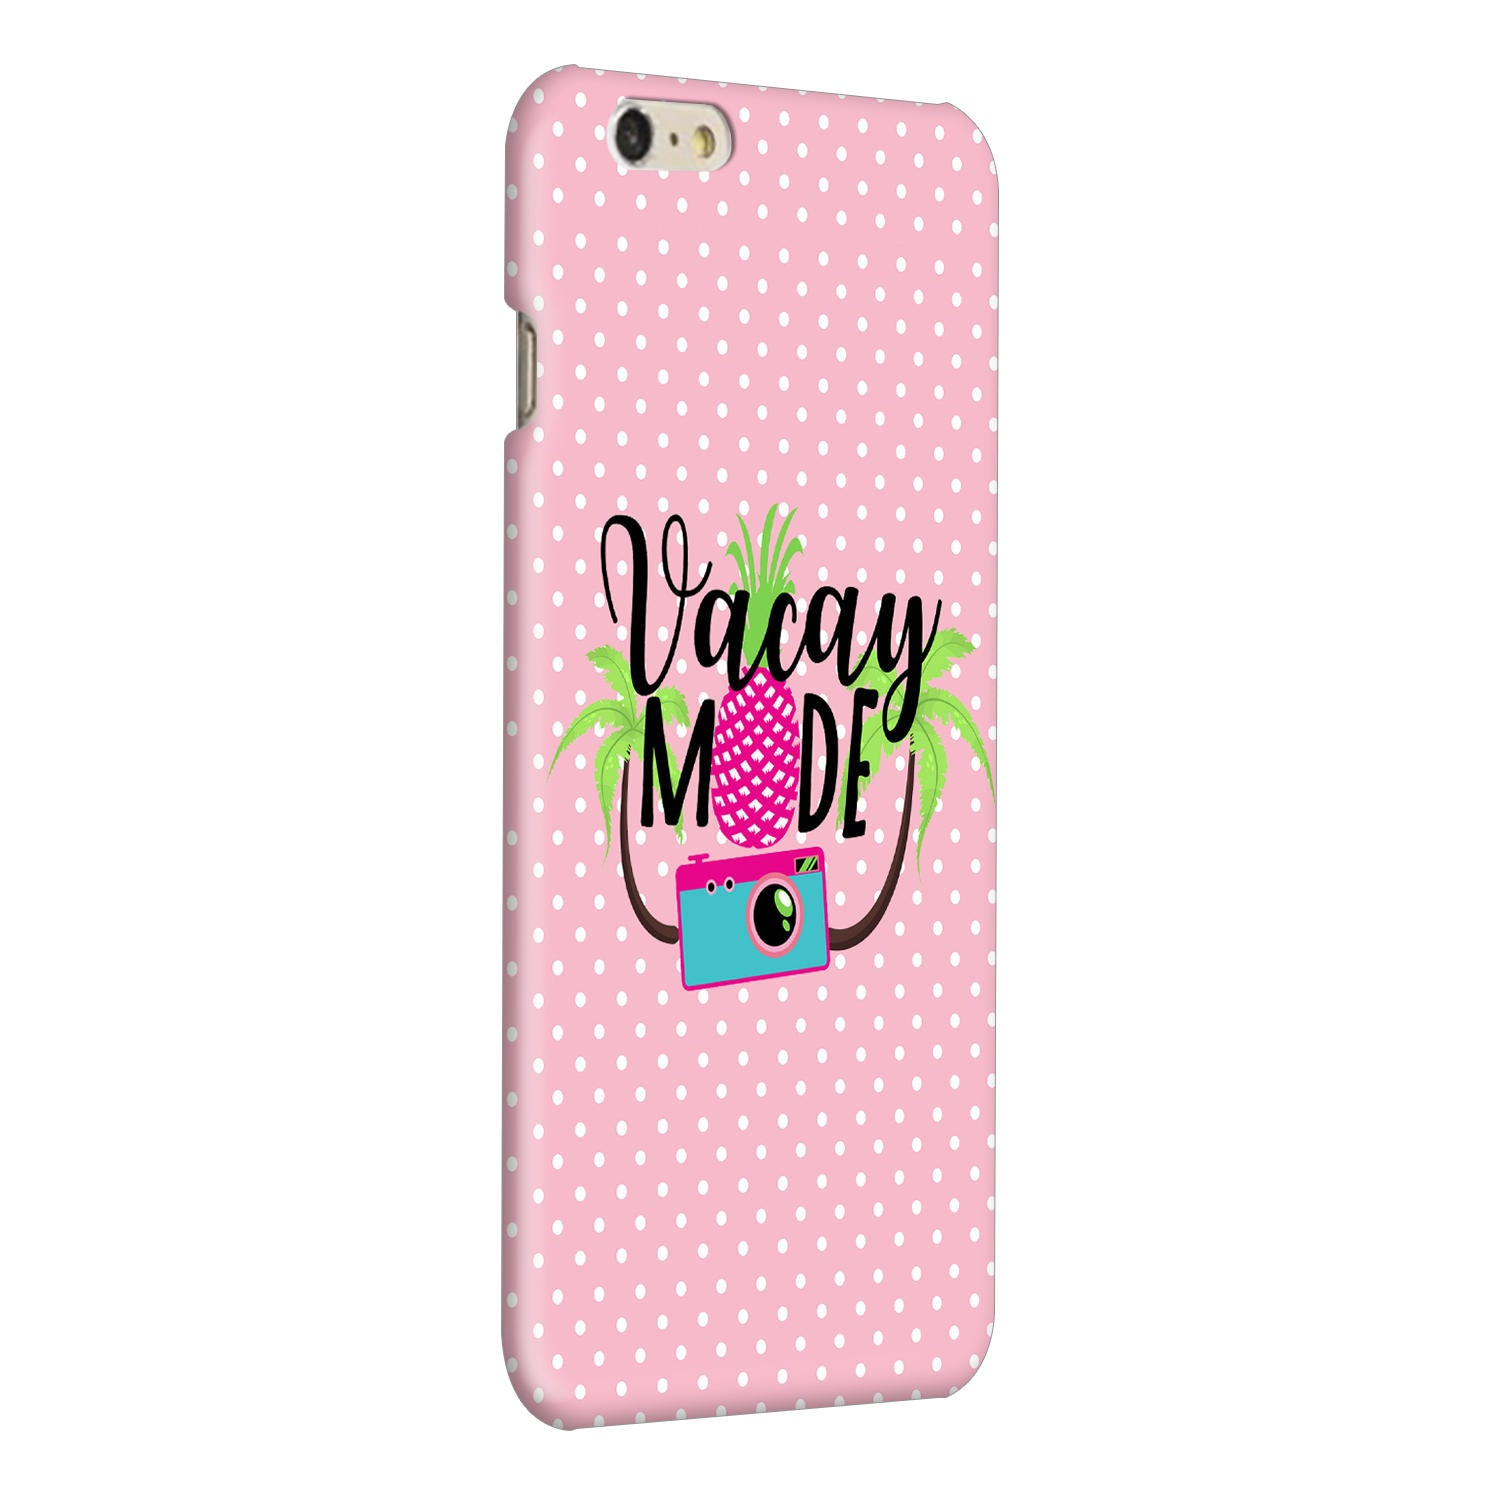 Vacay Mode With Cute White Dots Typography iPhone 6 Plus Mobile Cover Case - MADANYU